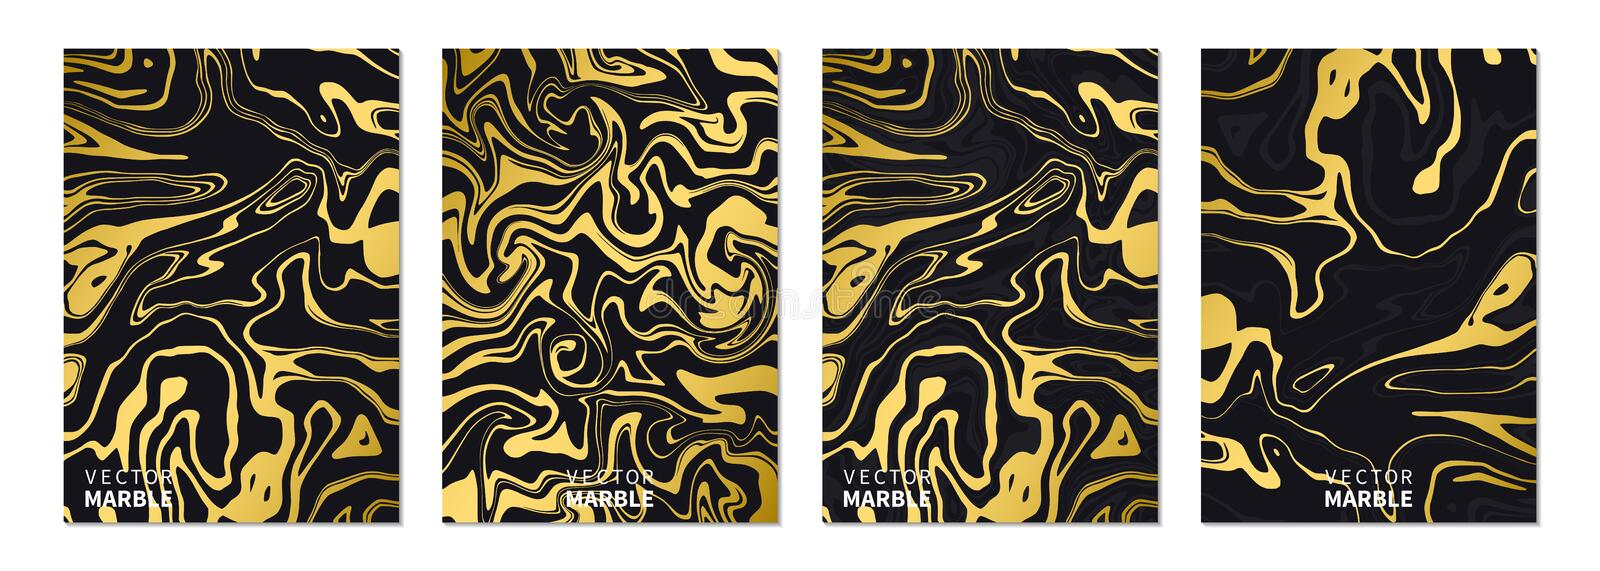 Liquid marble texture in gold. Vertical banners set with abstract background. Golden dynamic fluid art splash. Vector royalty free illustration